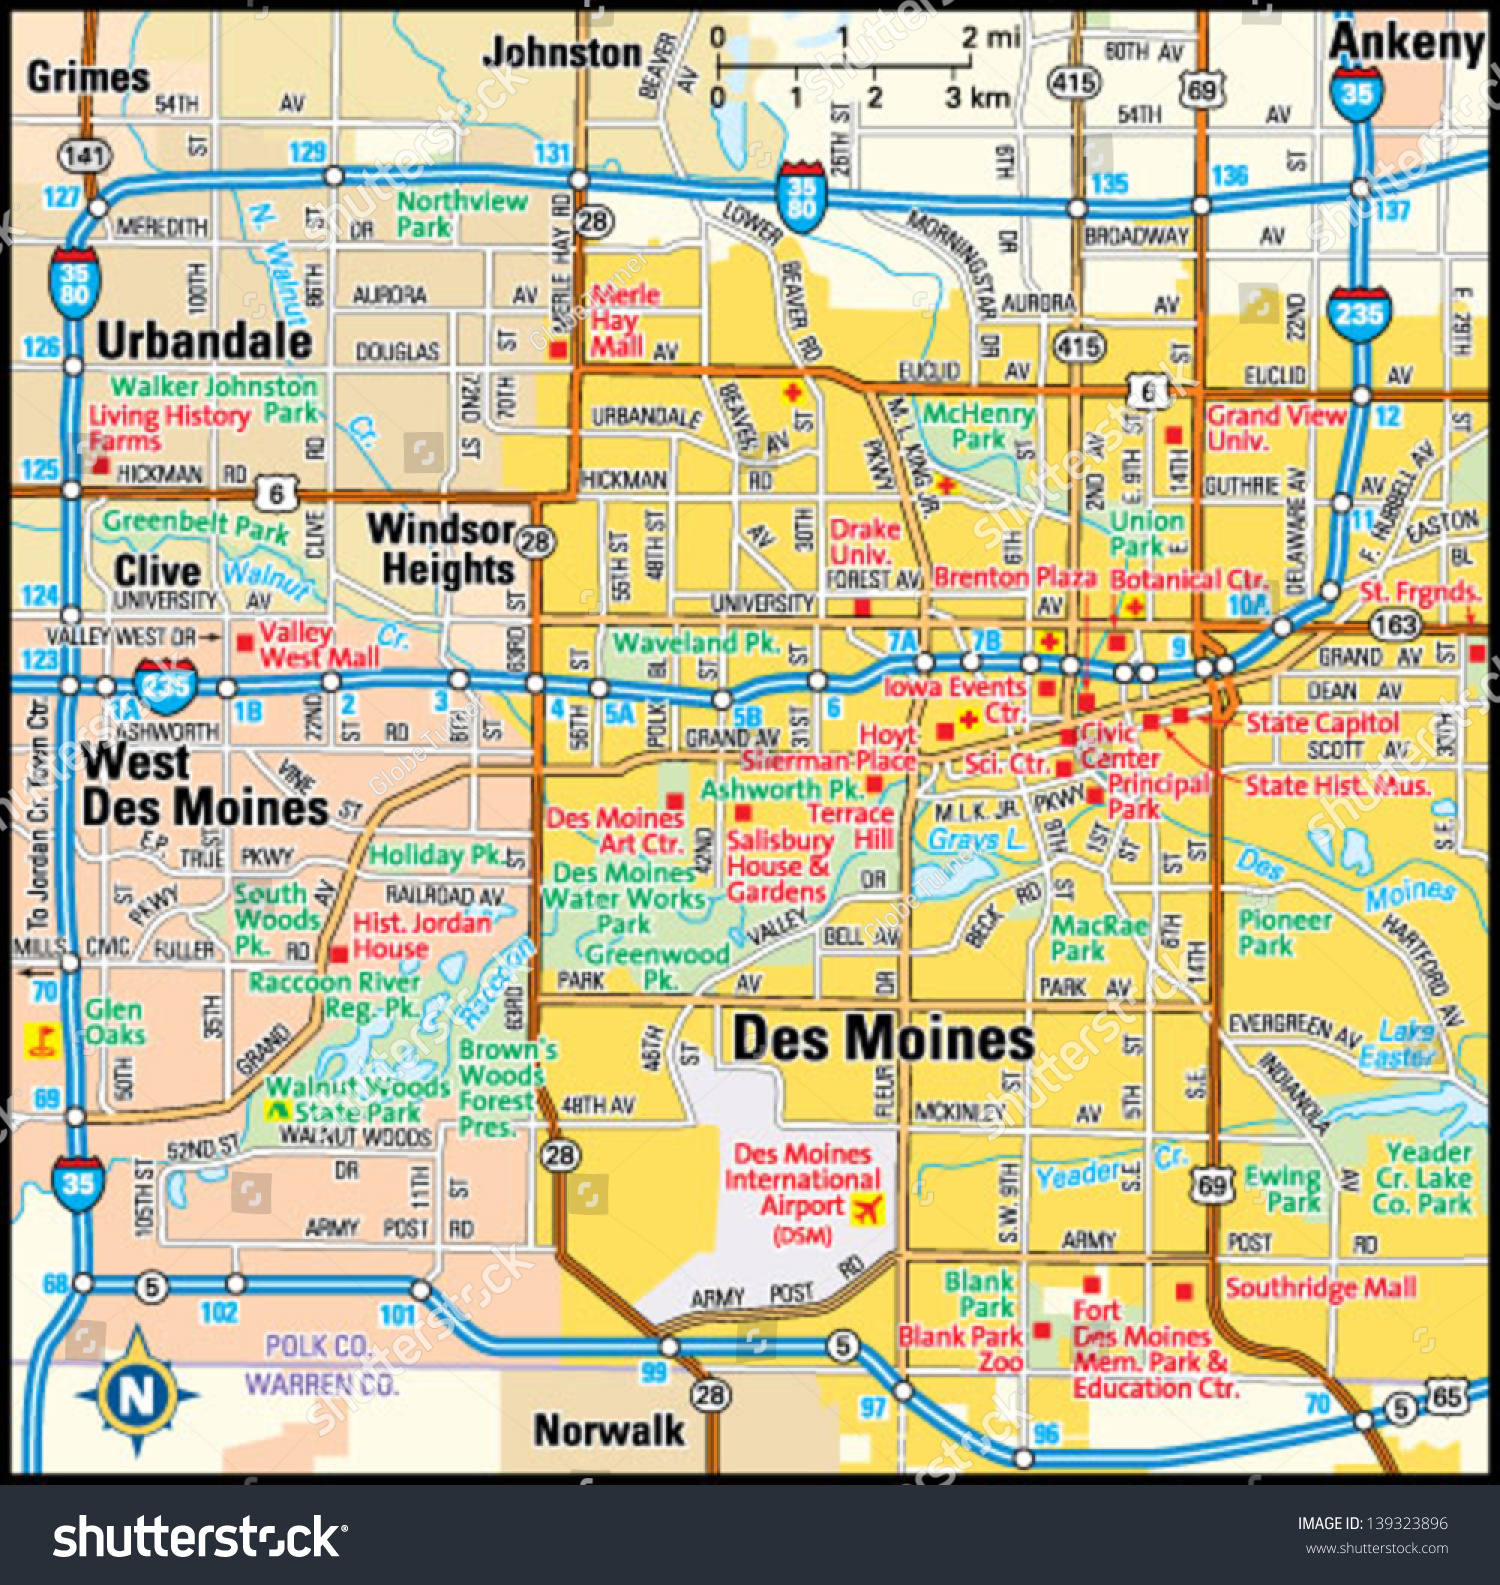 Des Moines Iowa Area Map Stock Vector (Royalty Free) 139323896 ...